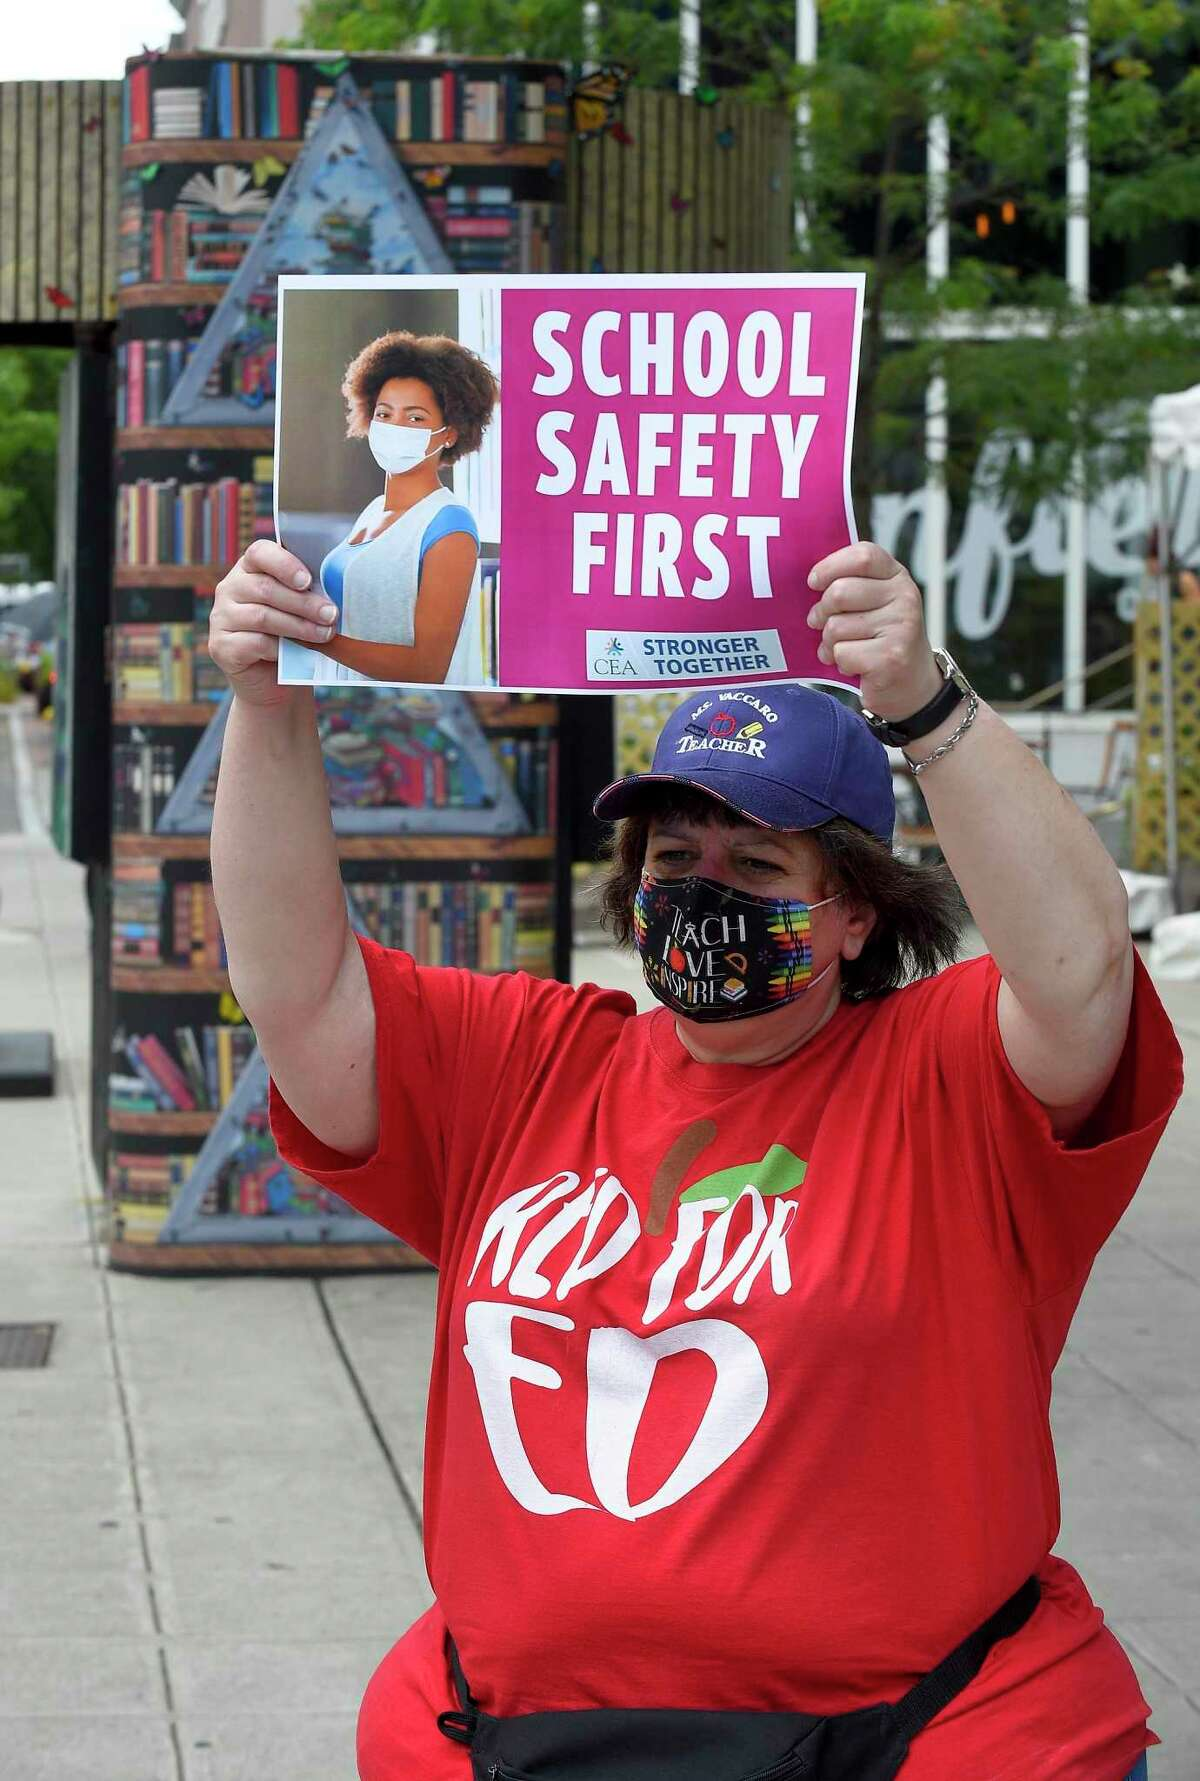 Stamford teachers Bettina Vaccaro stands outside of the Ferguson Library on the corner of Broad and Bedford Streets soliciting passing motorists to beep their horns as a car caravan of fellow teachers pass by on July 30, 2020 in Stamford, Connecticut. The teachers union, Stamford Education Association, participated in the CEA's